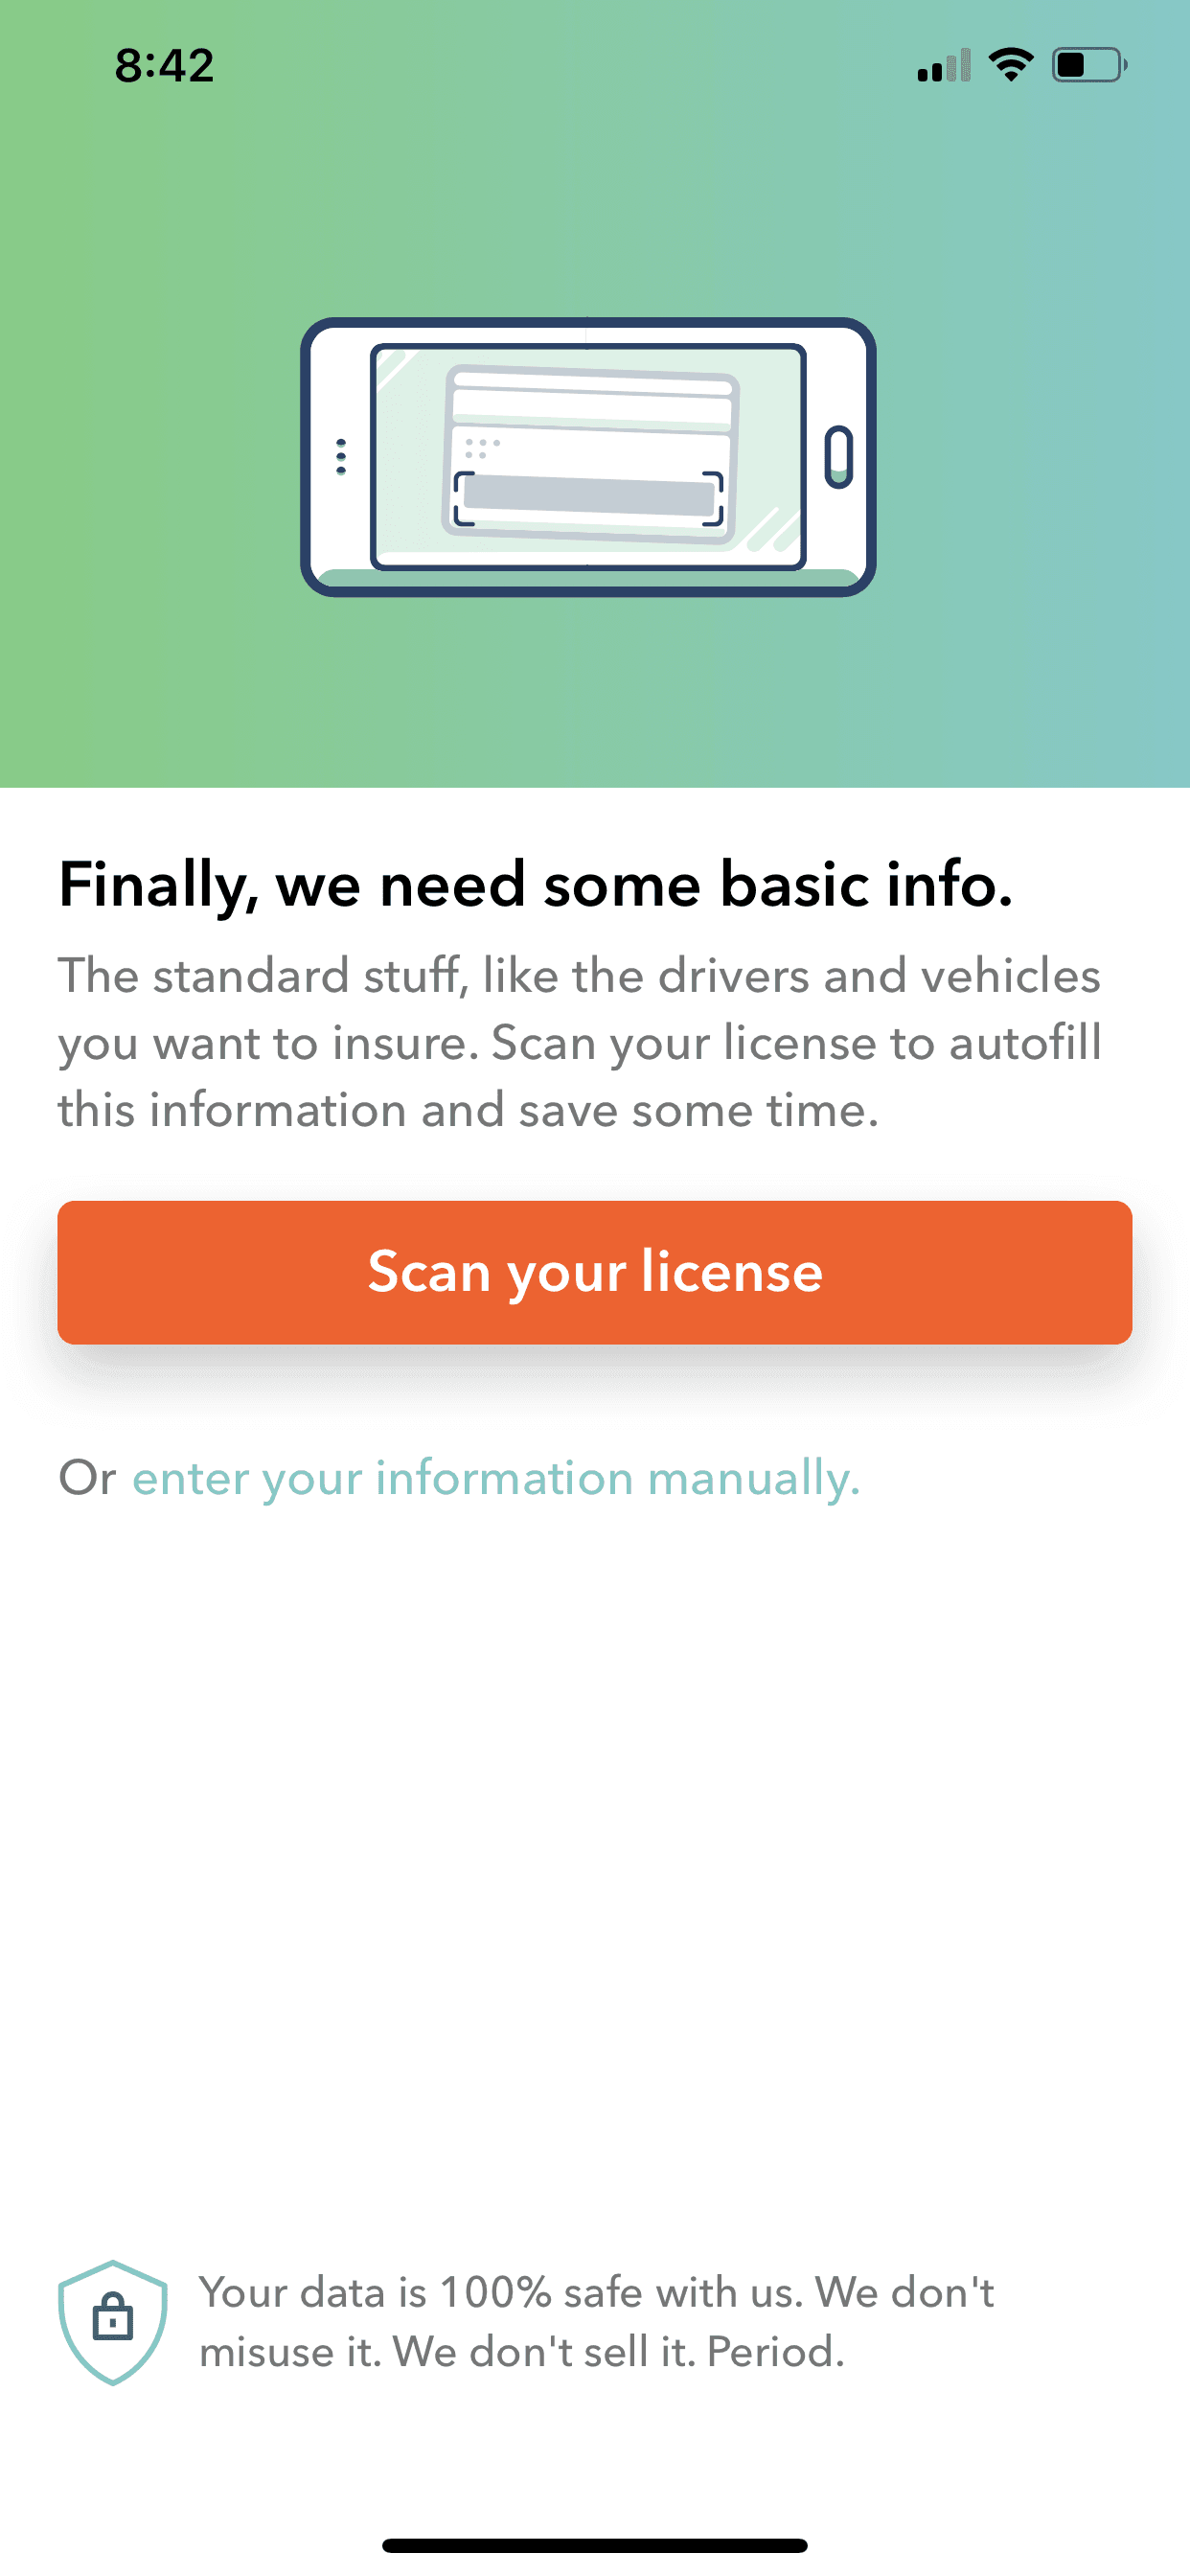 Root Car Insurance Review - Scan your license